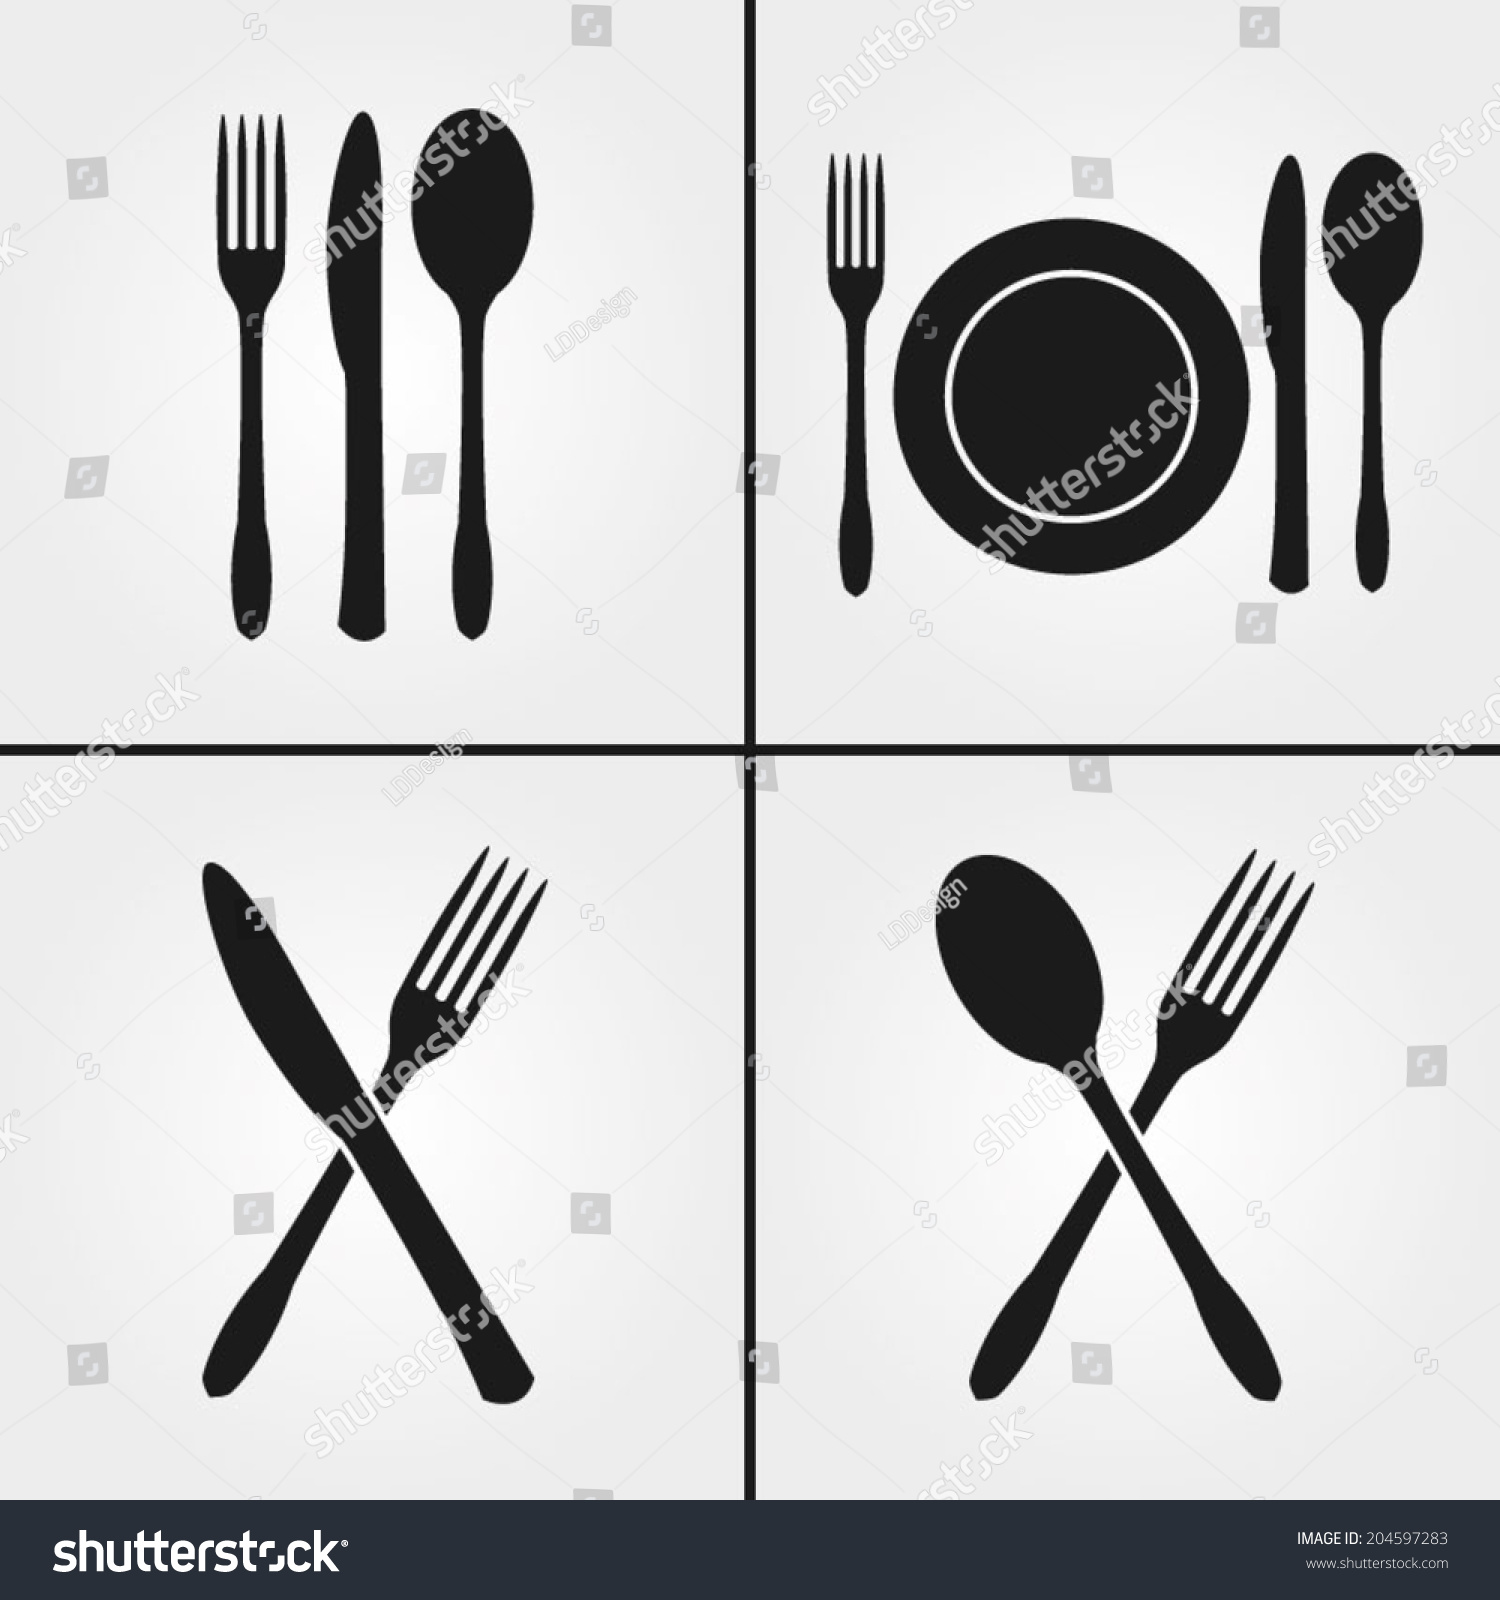 Posate Ristorante Cutlery Restaurant Icons Stock Vector 204597283 Shutterstock